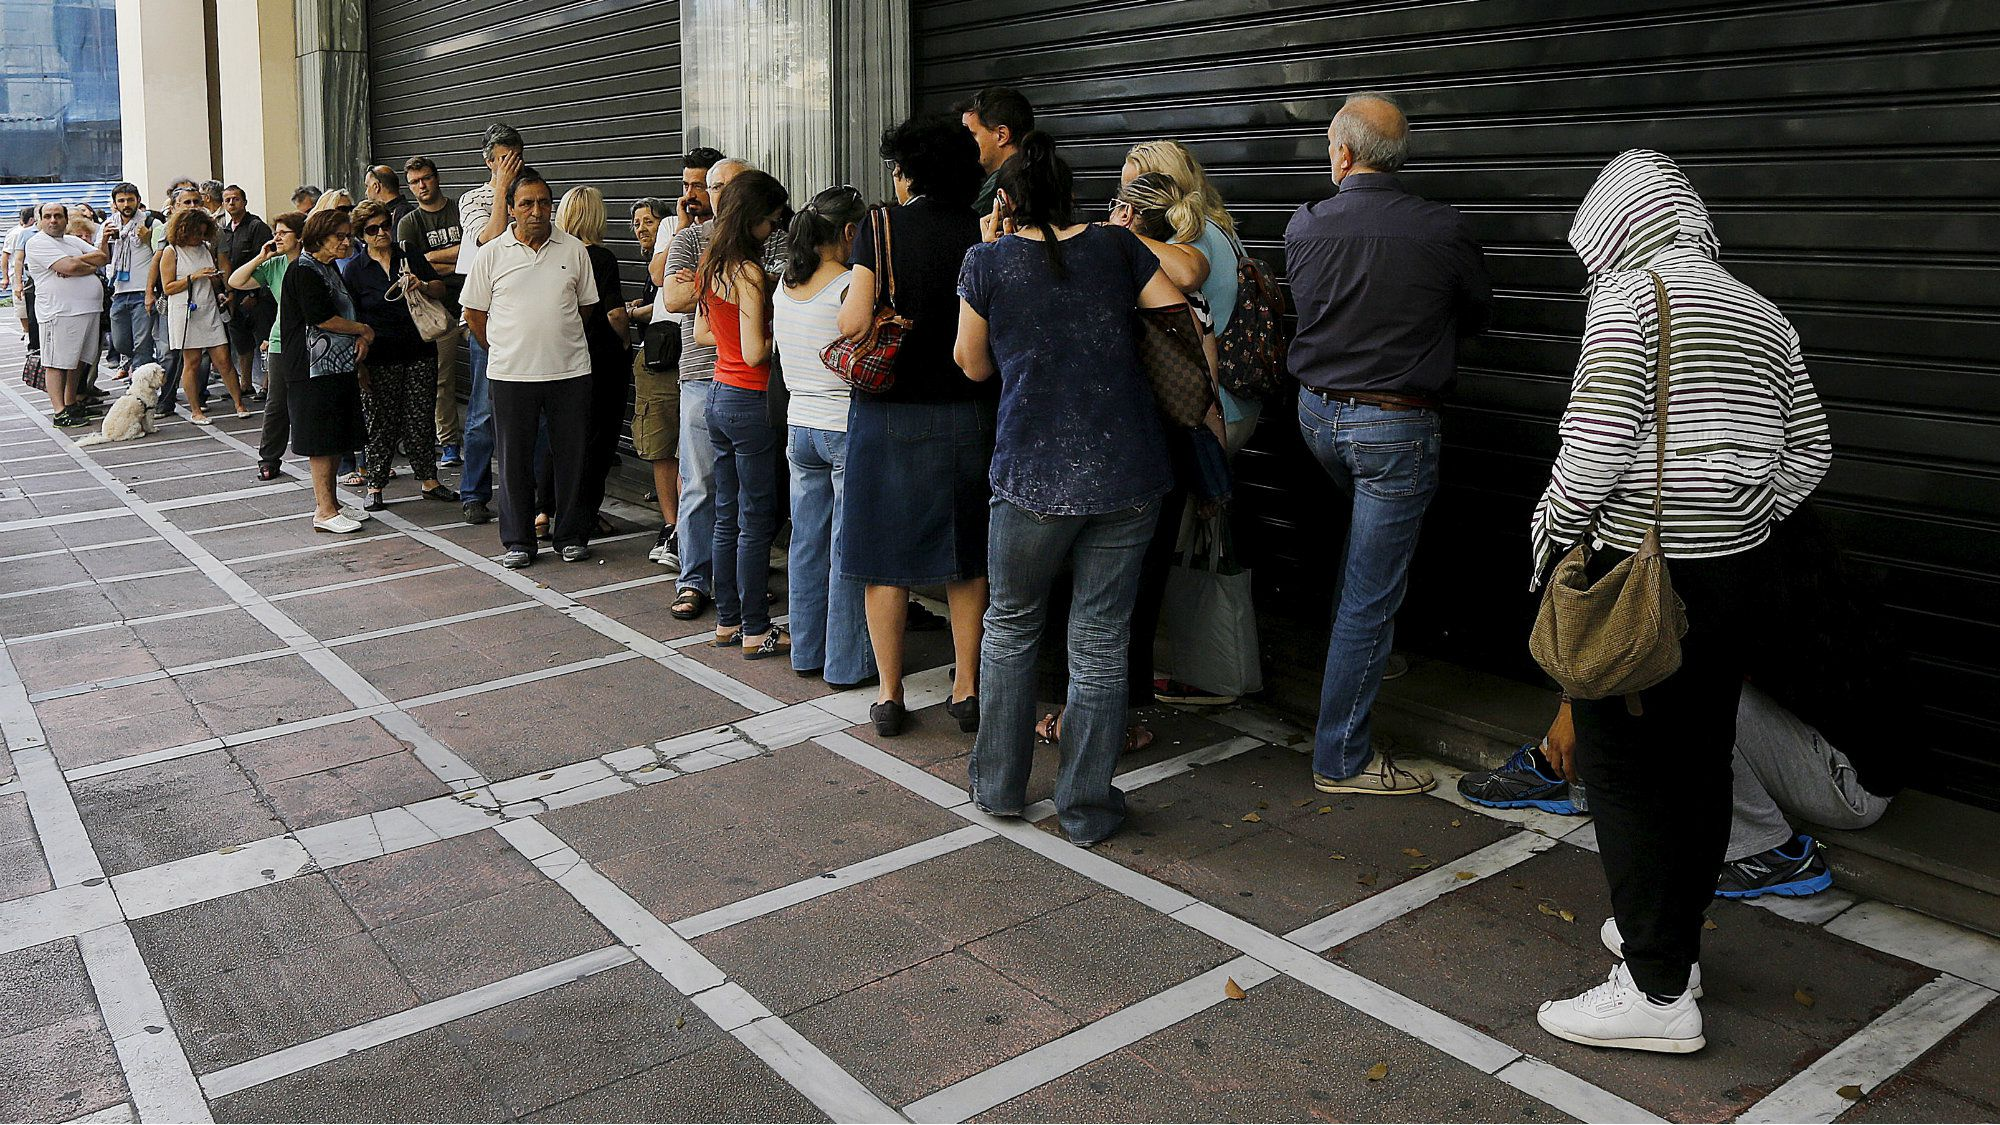 People wait outside a closed branch of Piraeus Bank in Athens, Greece June 27, 2015.